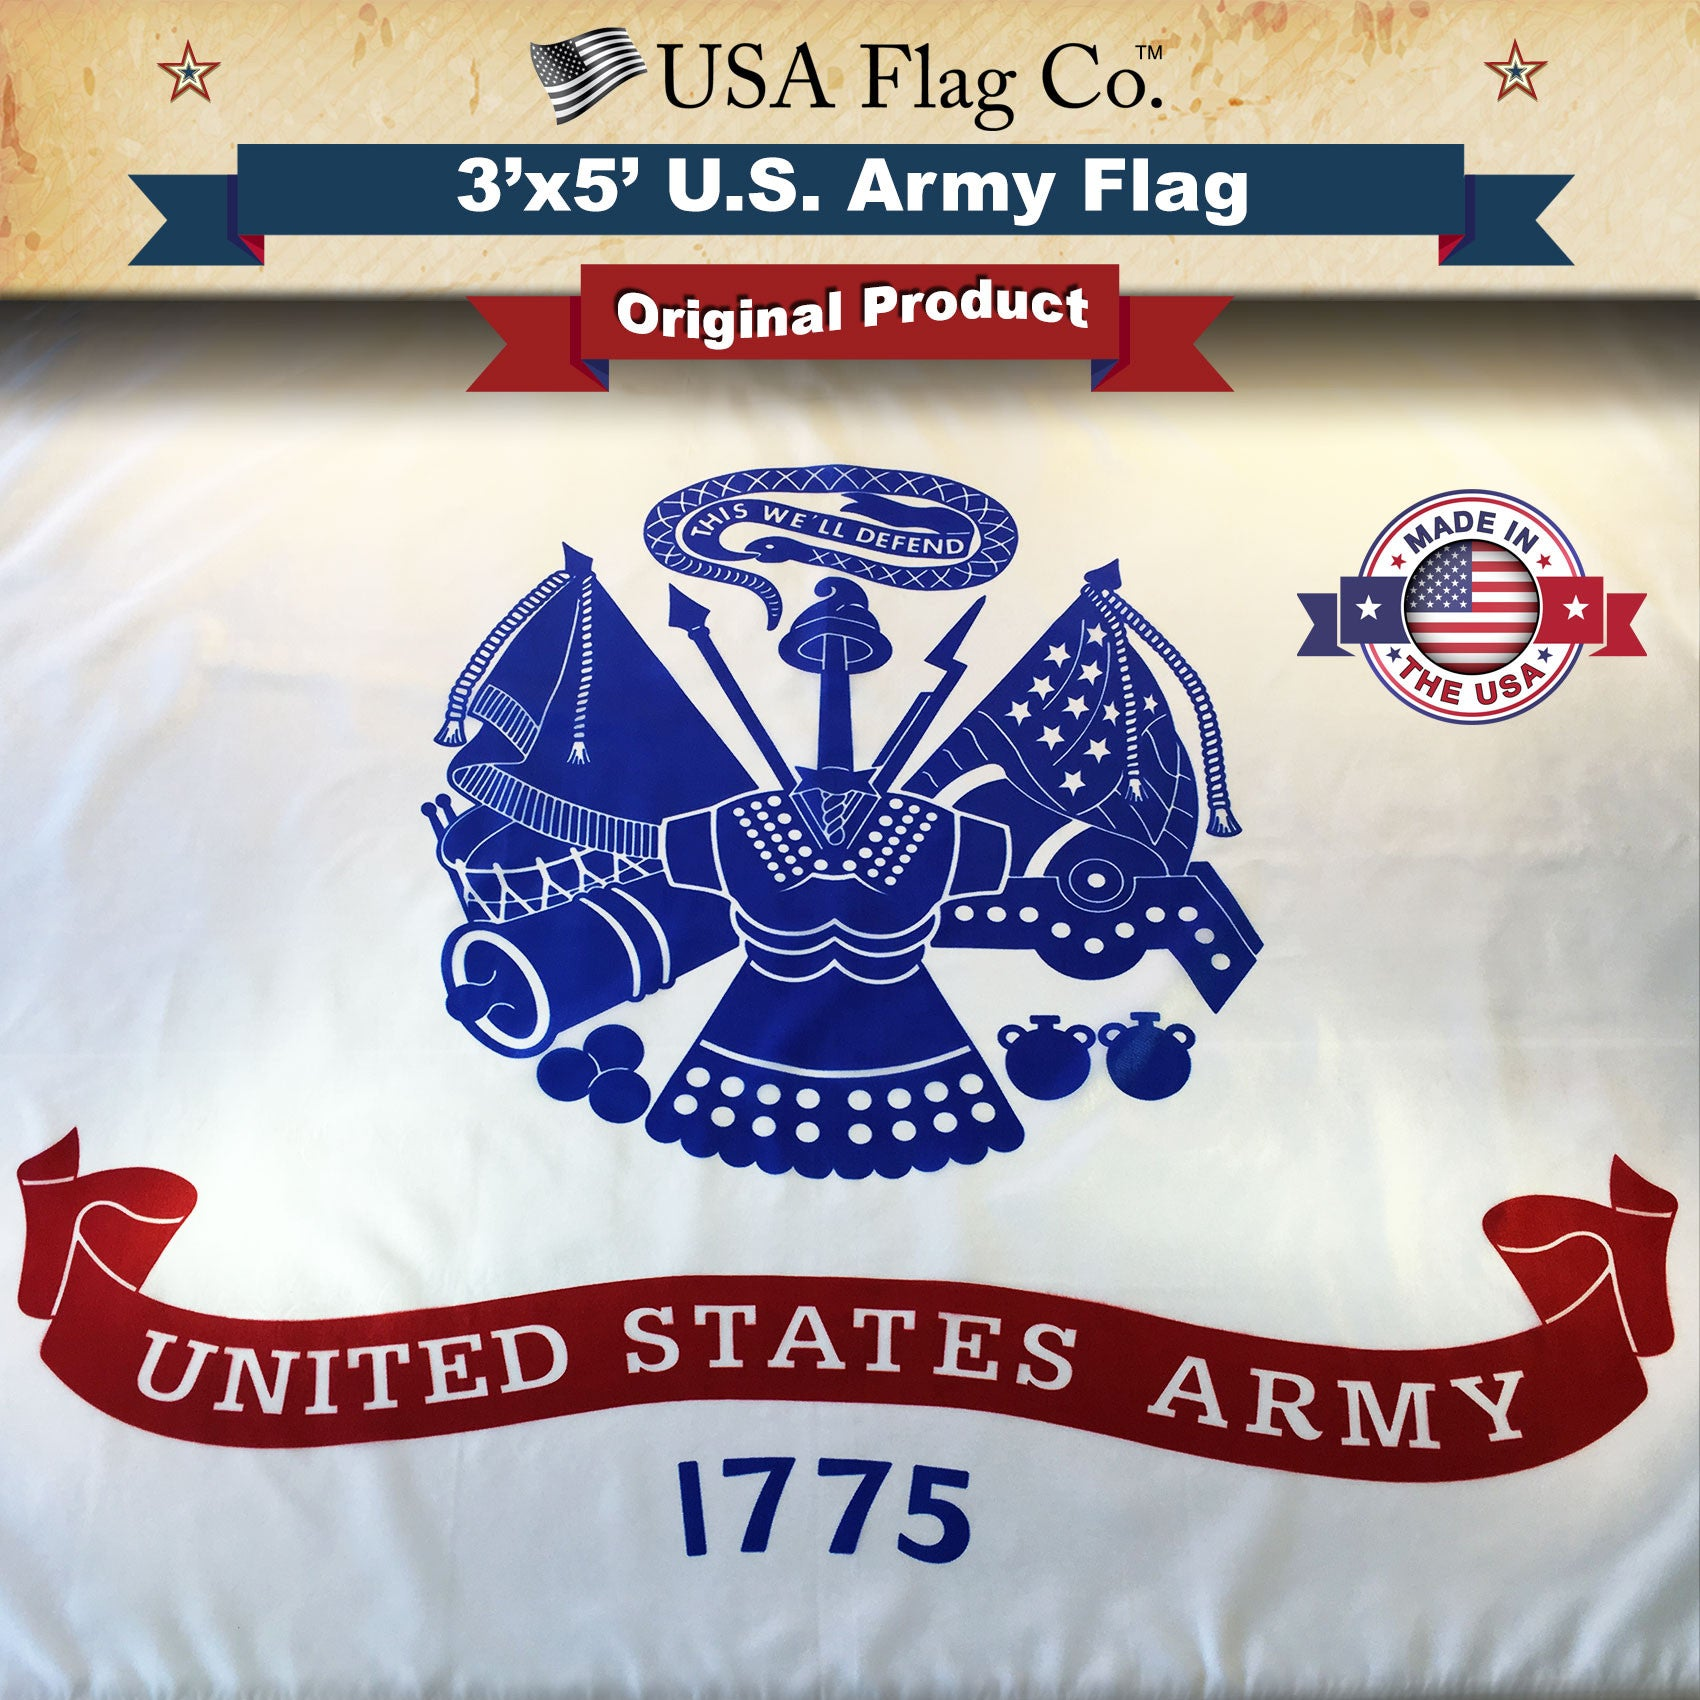 Us army flag 3x5 foot by usa flag co us army flag buycottarizona